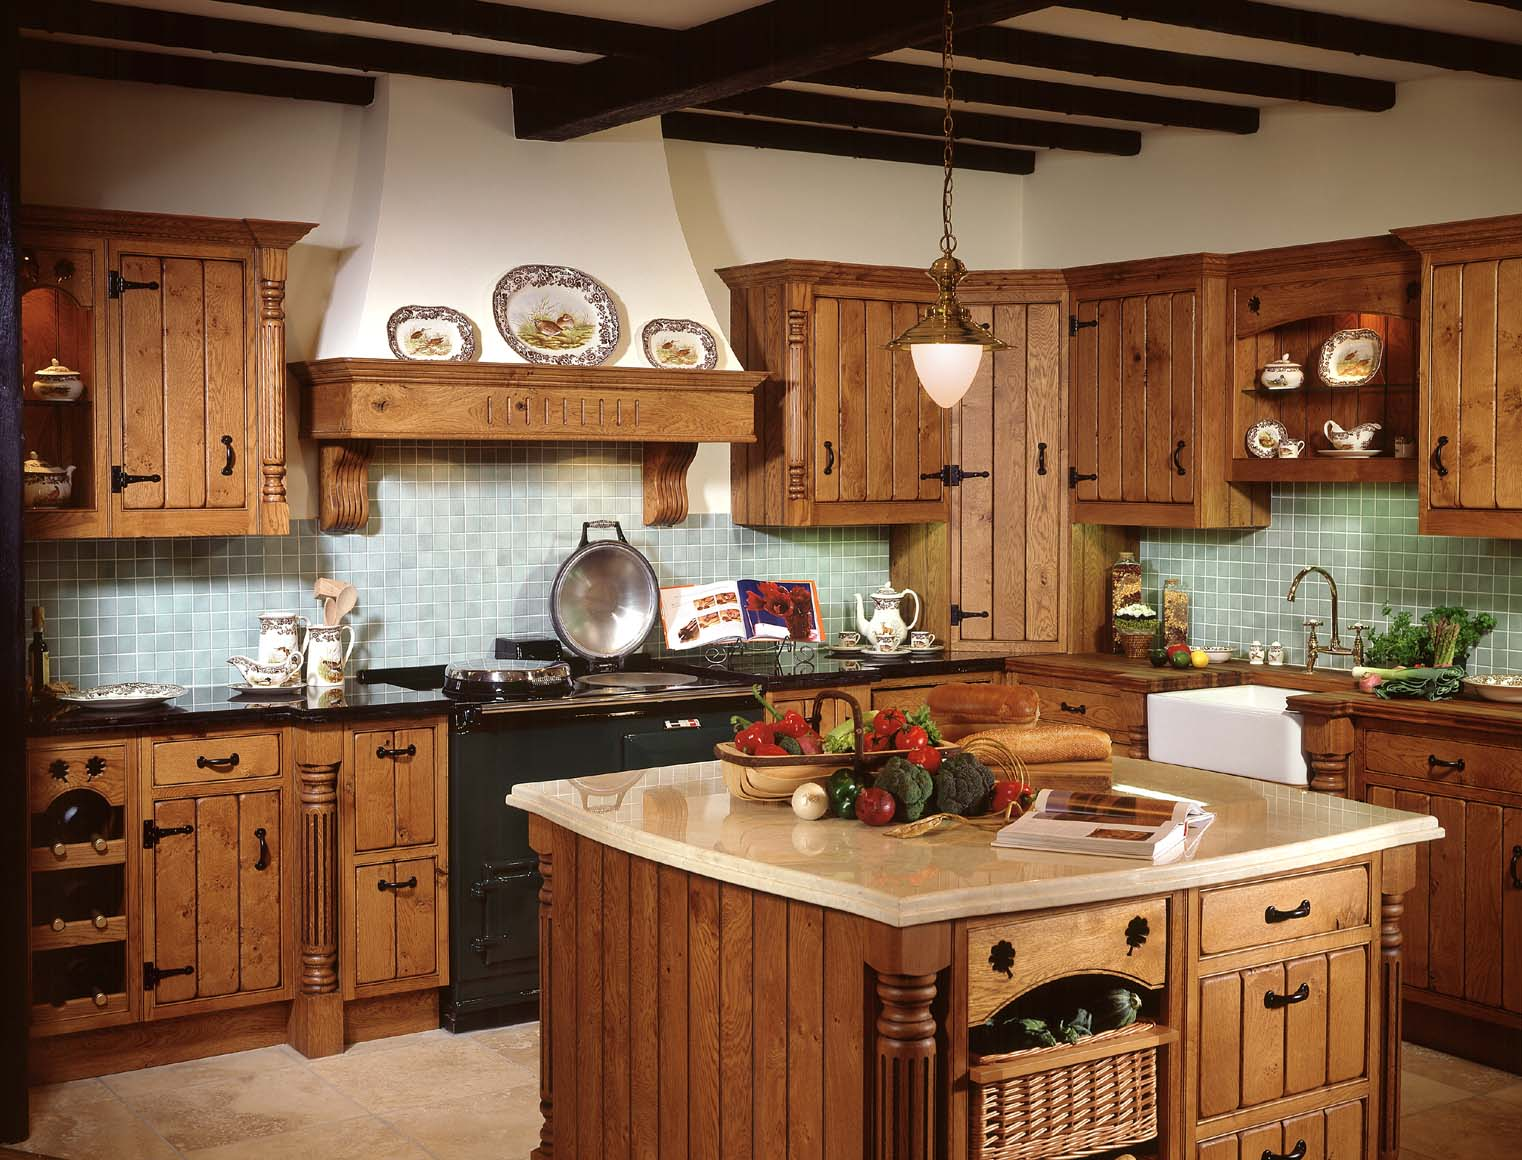 Incroyable Astounding Design Of The Kitchen Decorating Themes With Young Brown Wooden  Kitchen Island Added With Blue